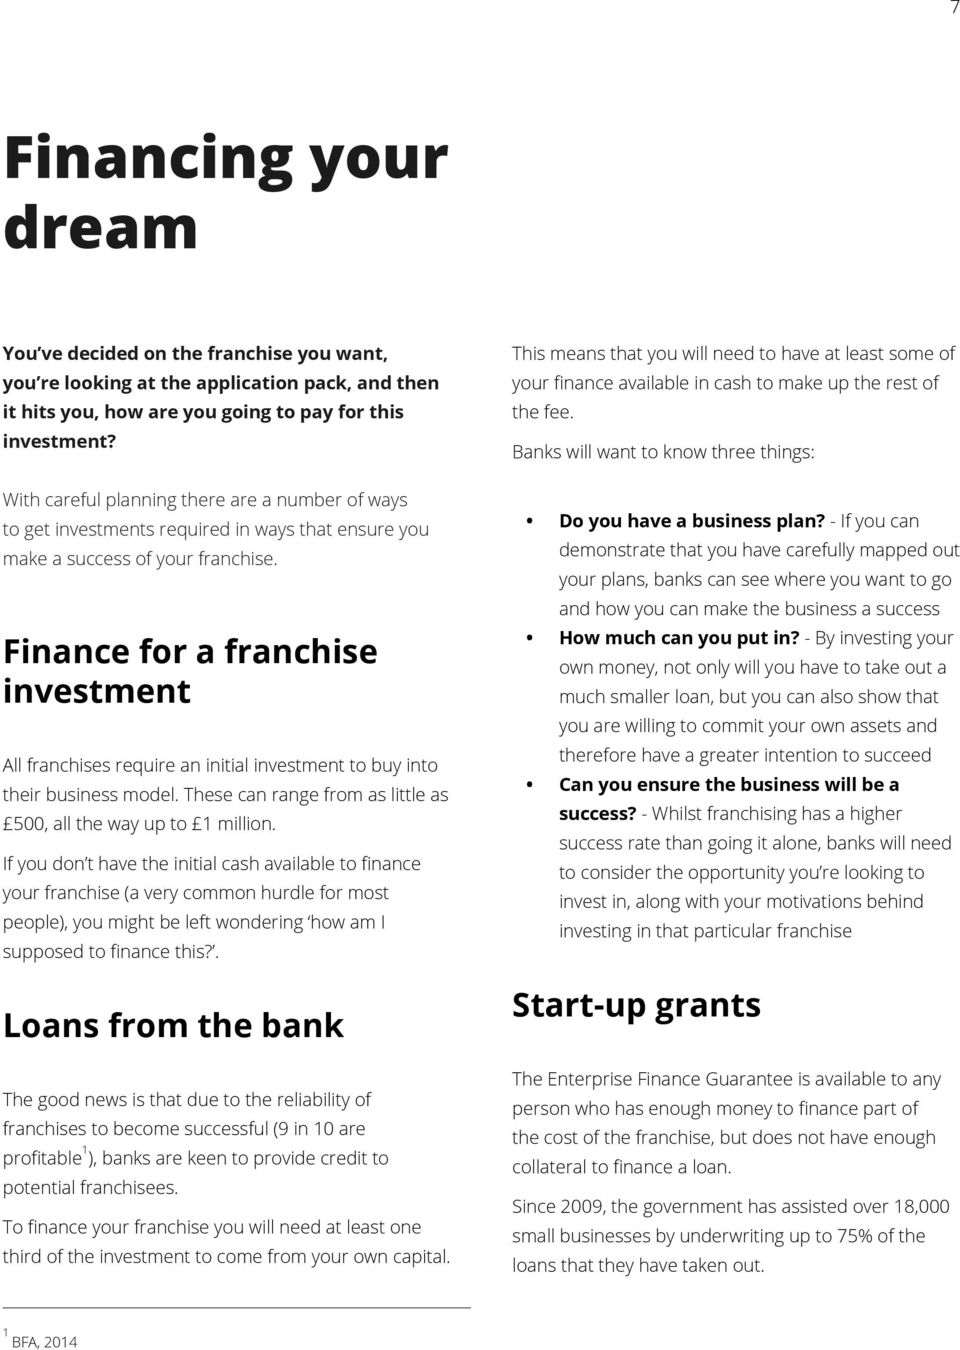 Finance for a franchise investment All franchises require an initial investment to buy into their business model. These can range from as little as 500, all the way up to 1 million.